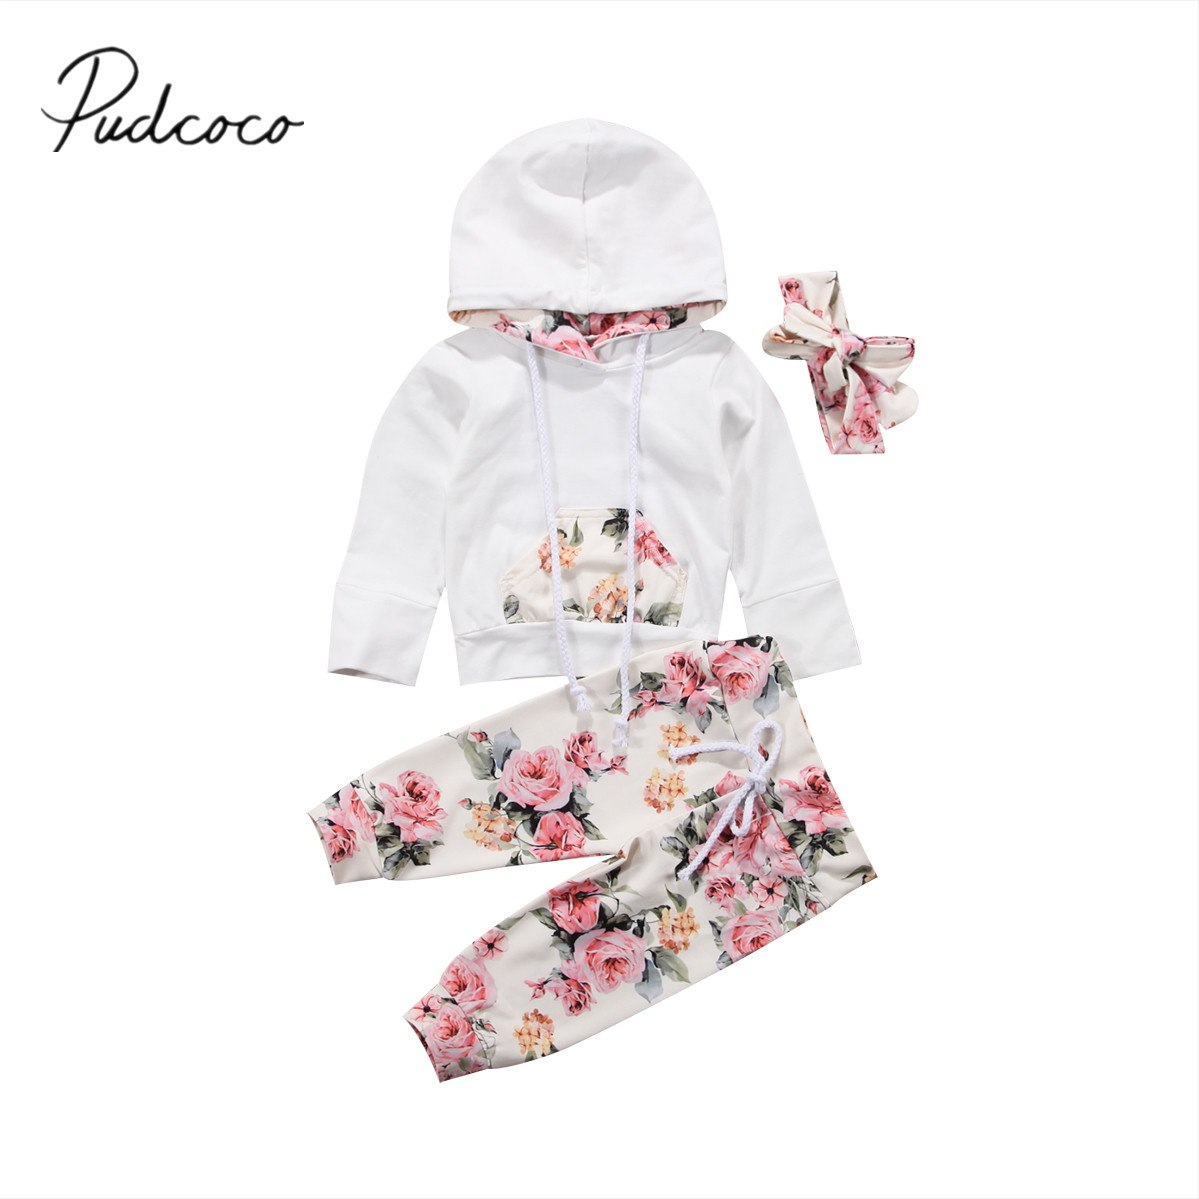 ad7d519f03b3e 2018 Brand New Infant Toddler Newborn Baby Girls Floral Outfit Clothes  Tracksuit Hooded Tops+Leggings